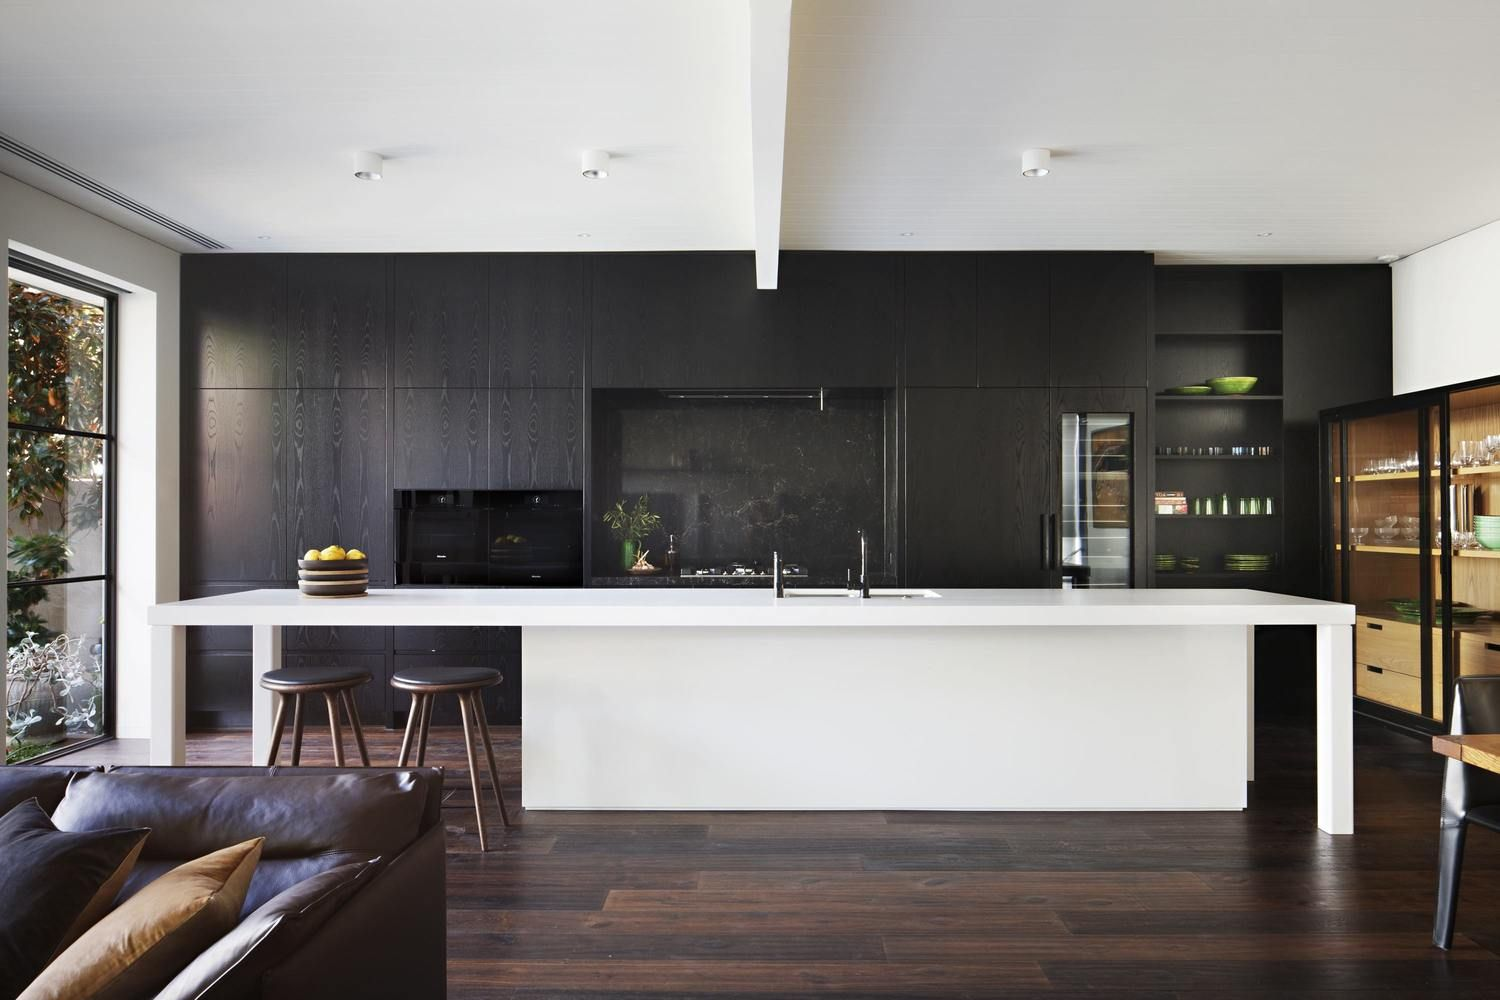 Good Gallery Of Albert Park House / Hindley U0026 Co   14